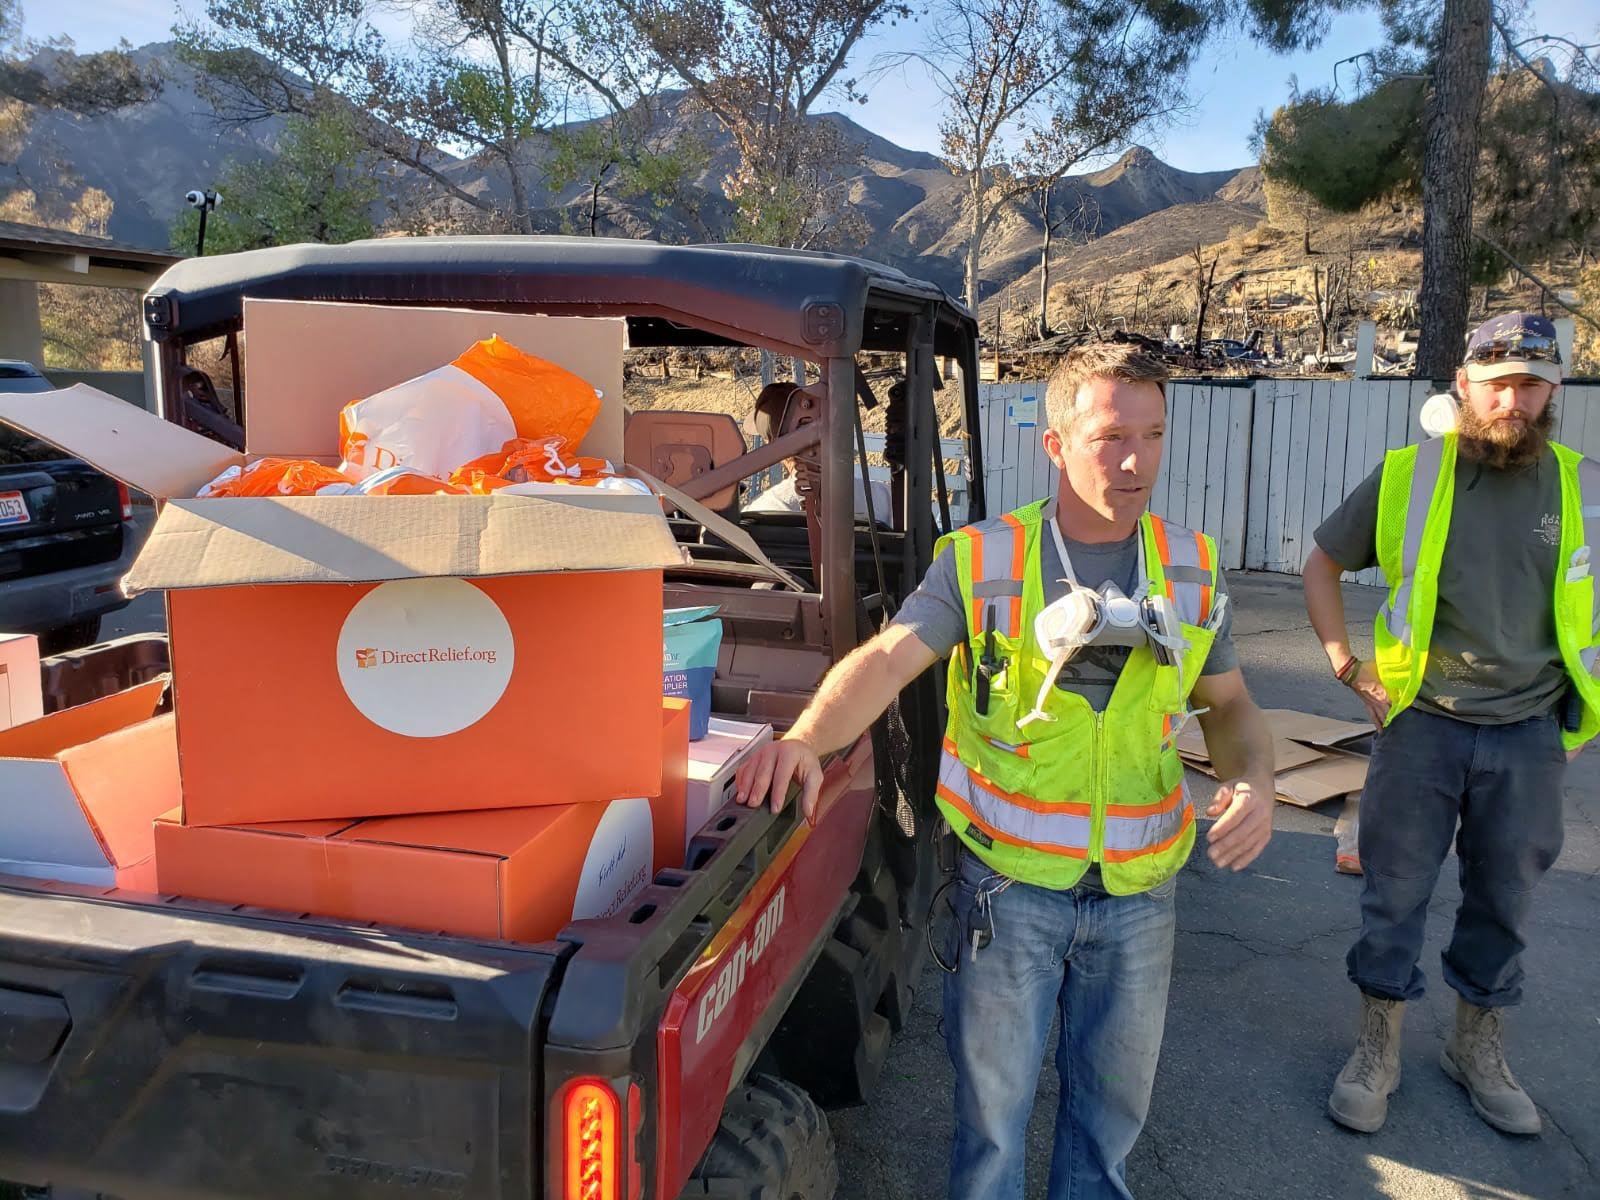 Direct Relief staff deliver medical aid to the Seminole Springs Mobile Home Park on Nov. 26, 2018, in Agoura Hills, California, where the Woolsey Fire ripped through earlier this month. Nearly half of the 215 homes in the Seminole Springs neighborhood burned, and the Upper Ojai Relief group has been assisting with recovery there. Direct Relief delivered protective gear for residents and volunteers, as well as N-95 respiratory masks, Direct Relief Medical Backpacks, and hygiene items for people who remain displaced. (Andrew MacCalla/Direct Relief)